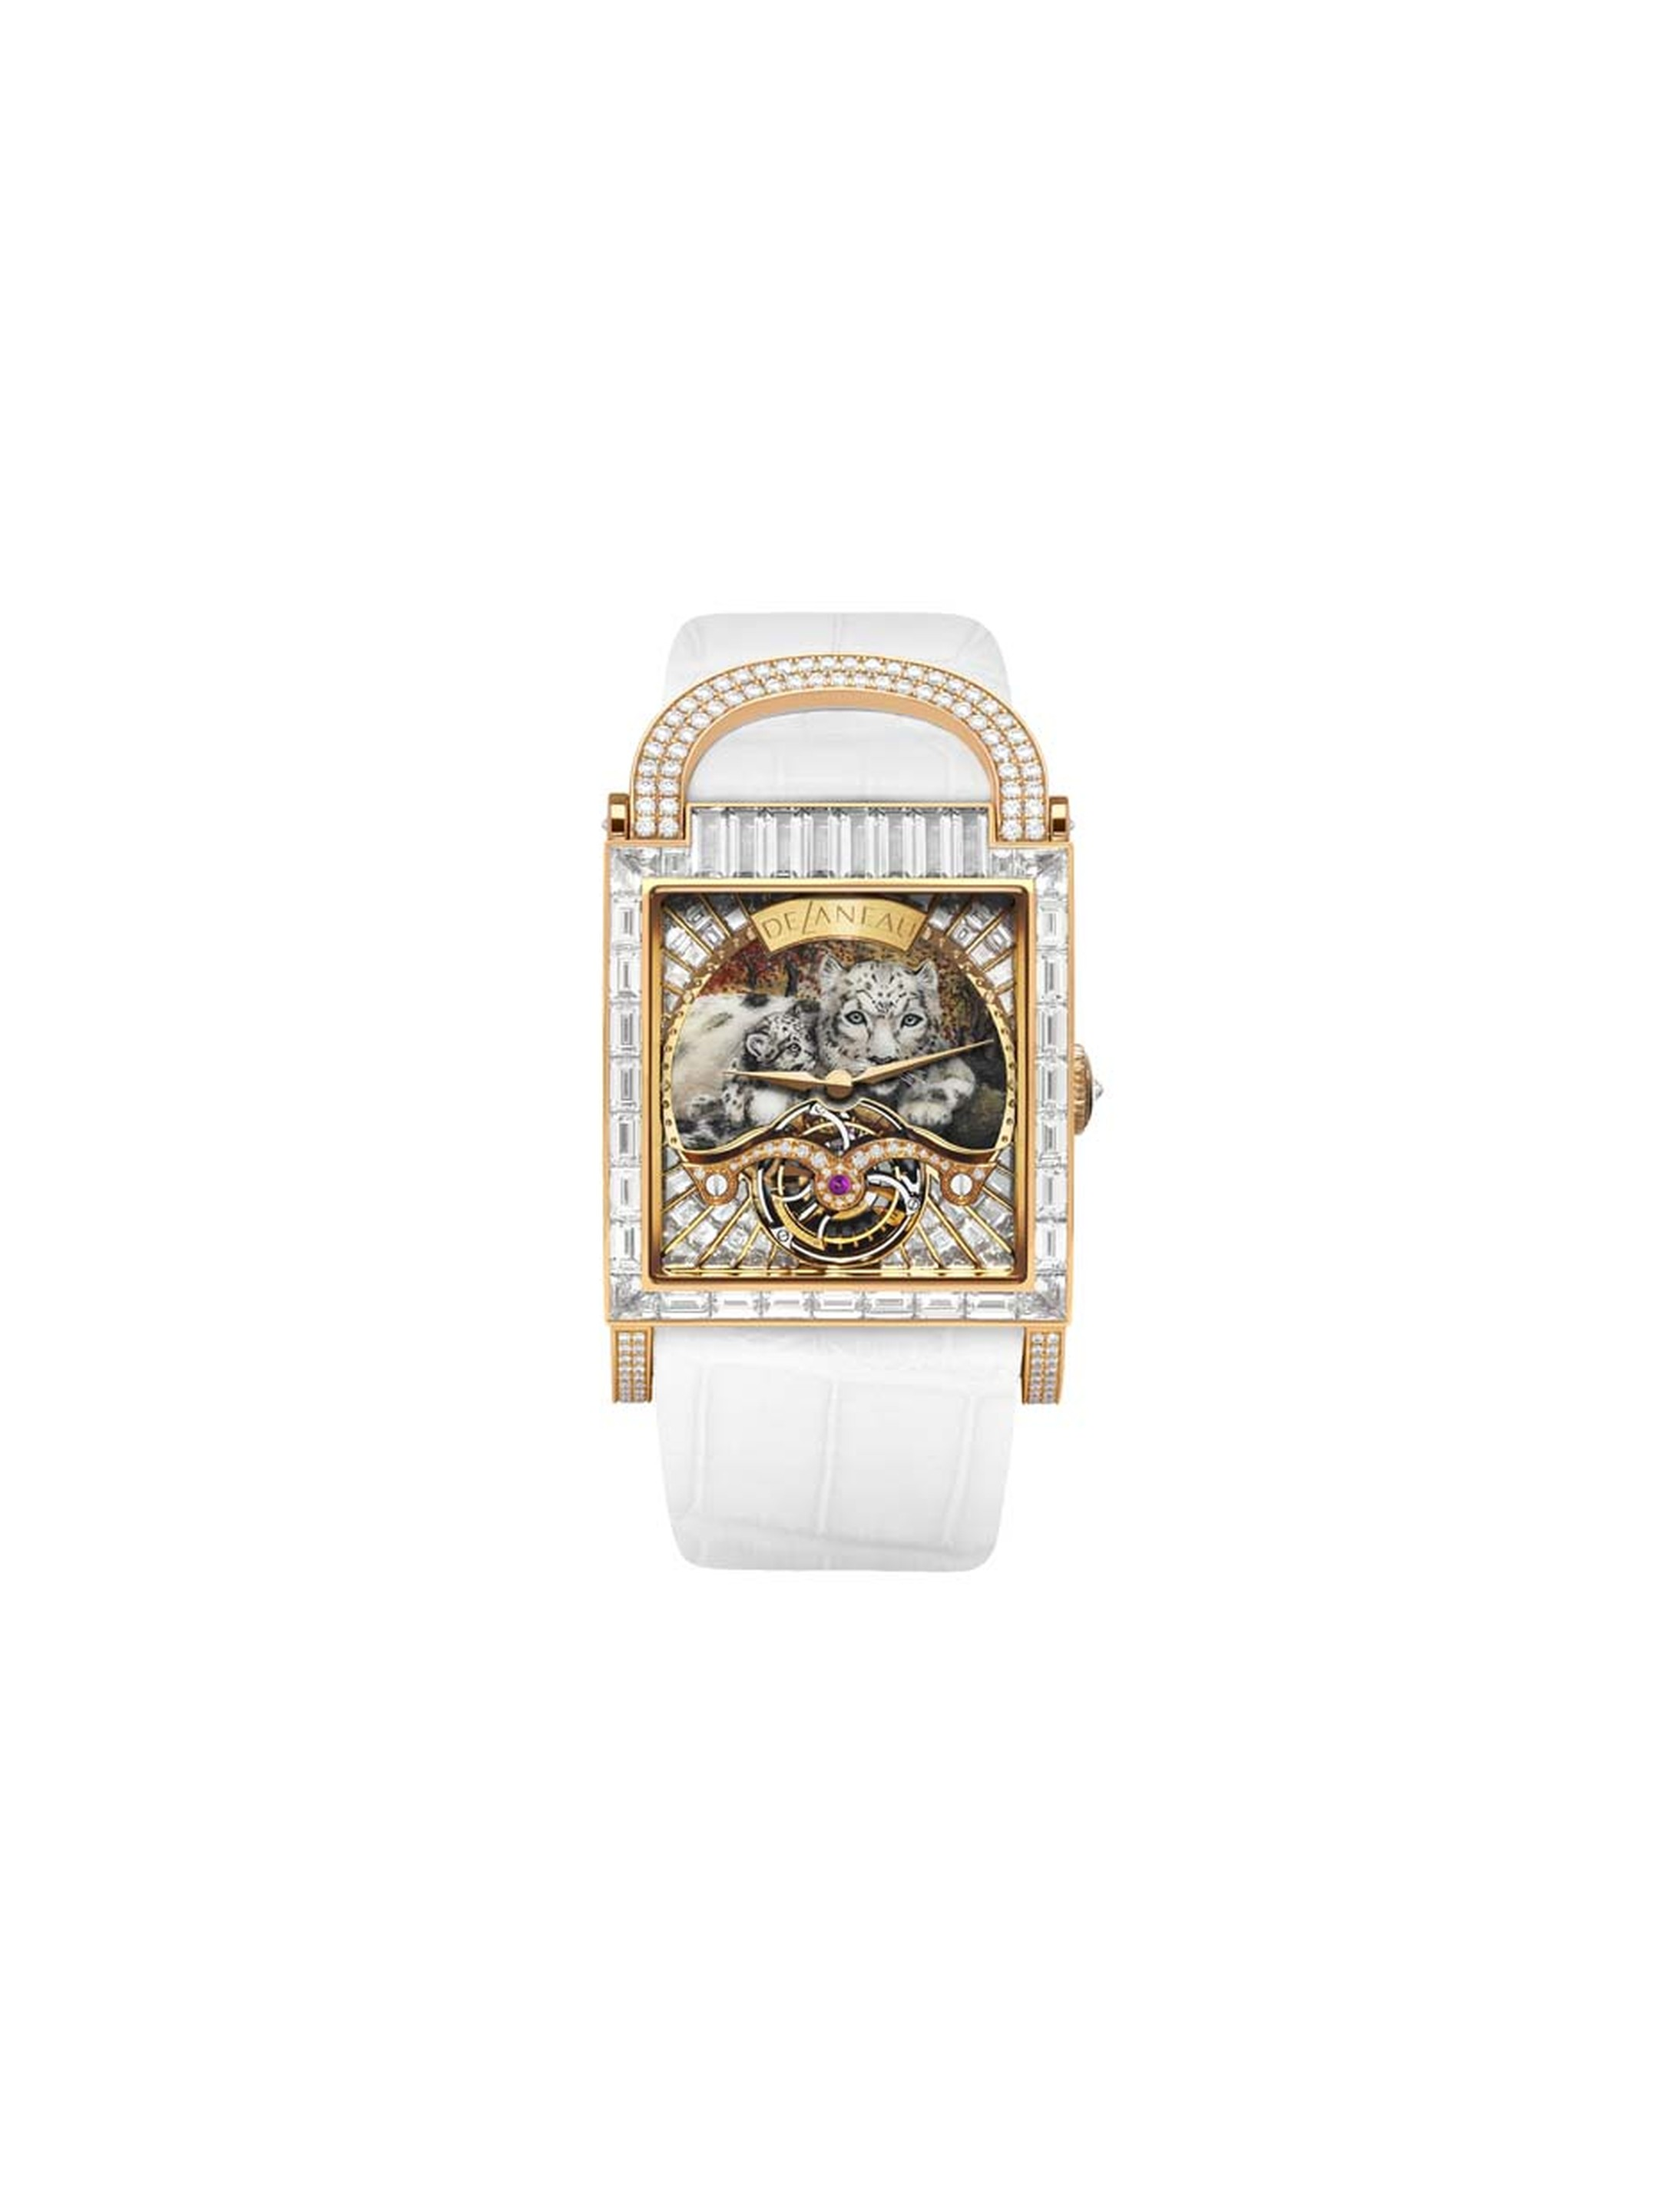 DeLaneau Dôme Tourbillion Leopard Cub features a Grand Feu miniature enamelled dial and a Tourbillon mechanical movement set with 56 baguette-cut diamonds and 24 pave diamonds.